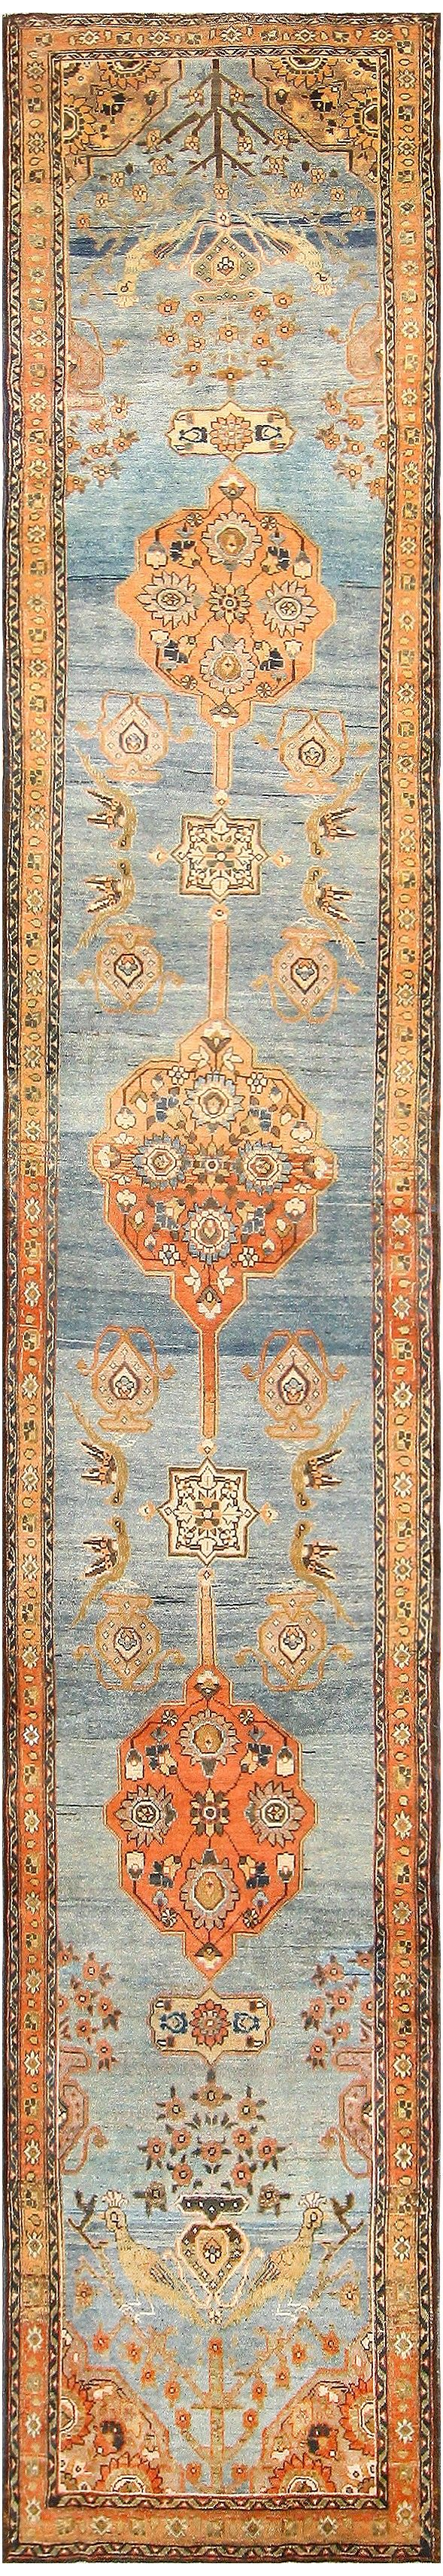 Antique Persian Malayer Runner 47972 Main Image - By Nazmiyal. Beautiful Persian carpet